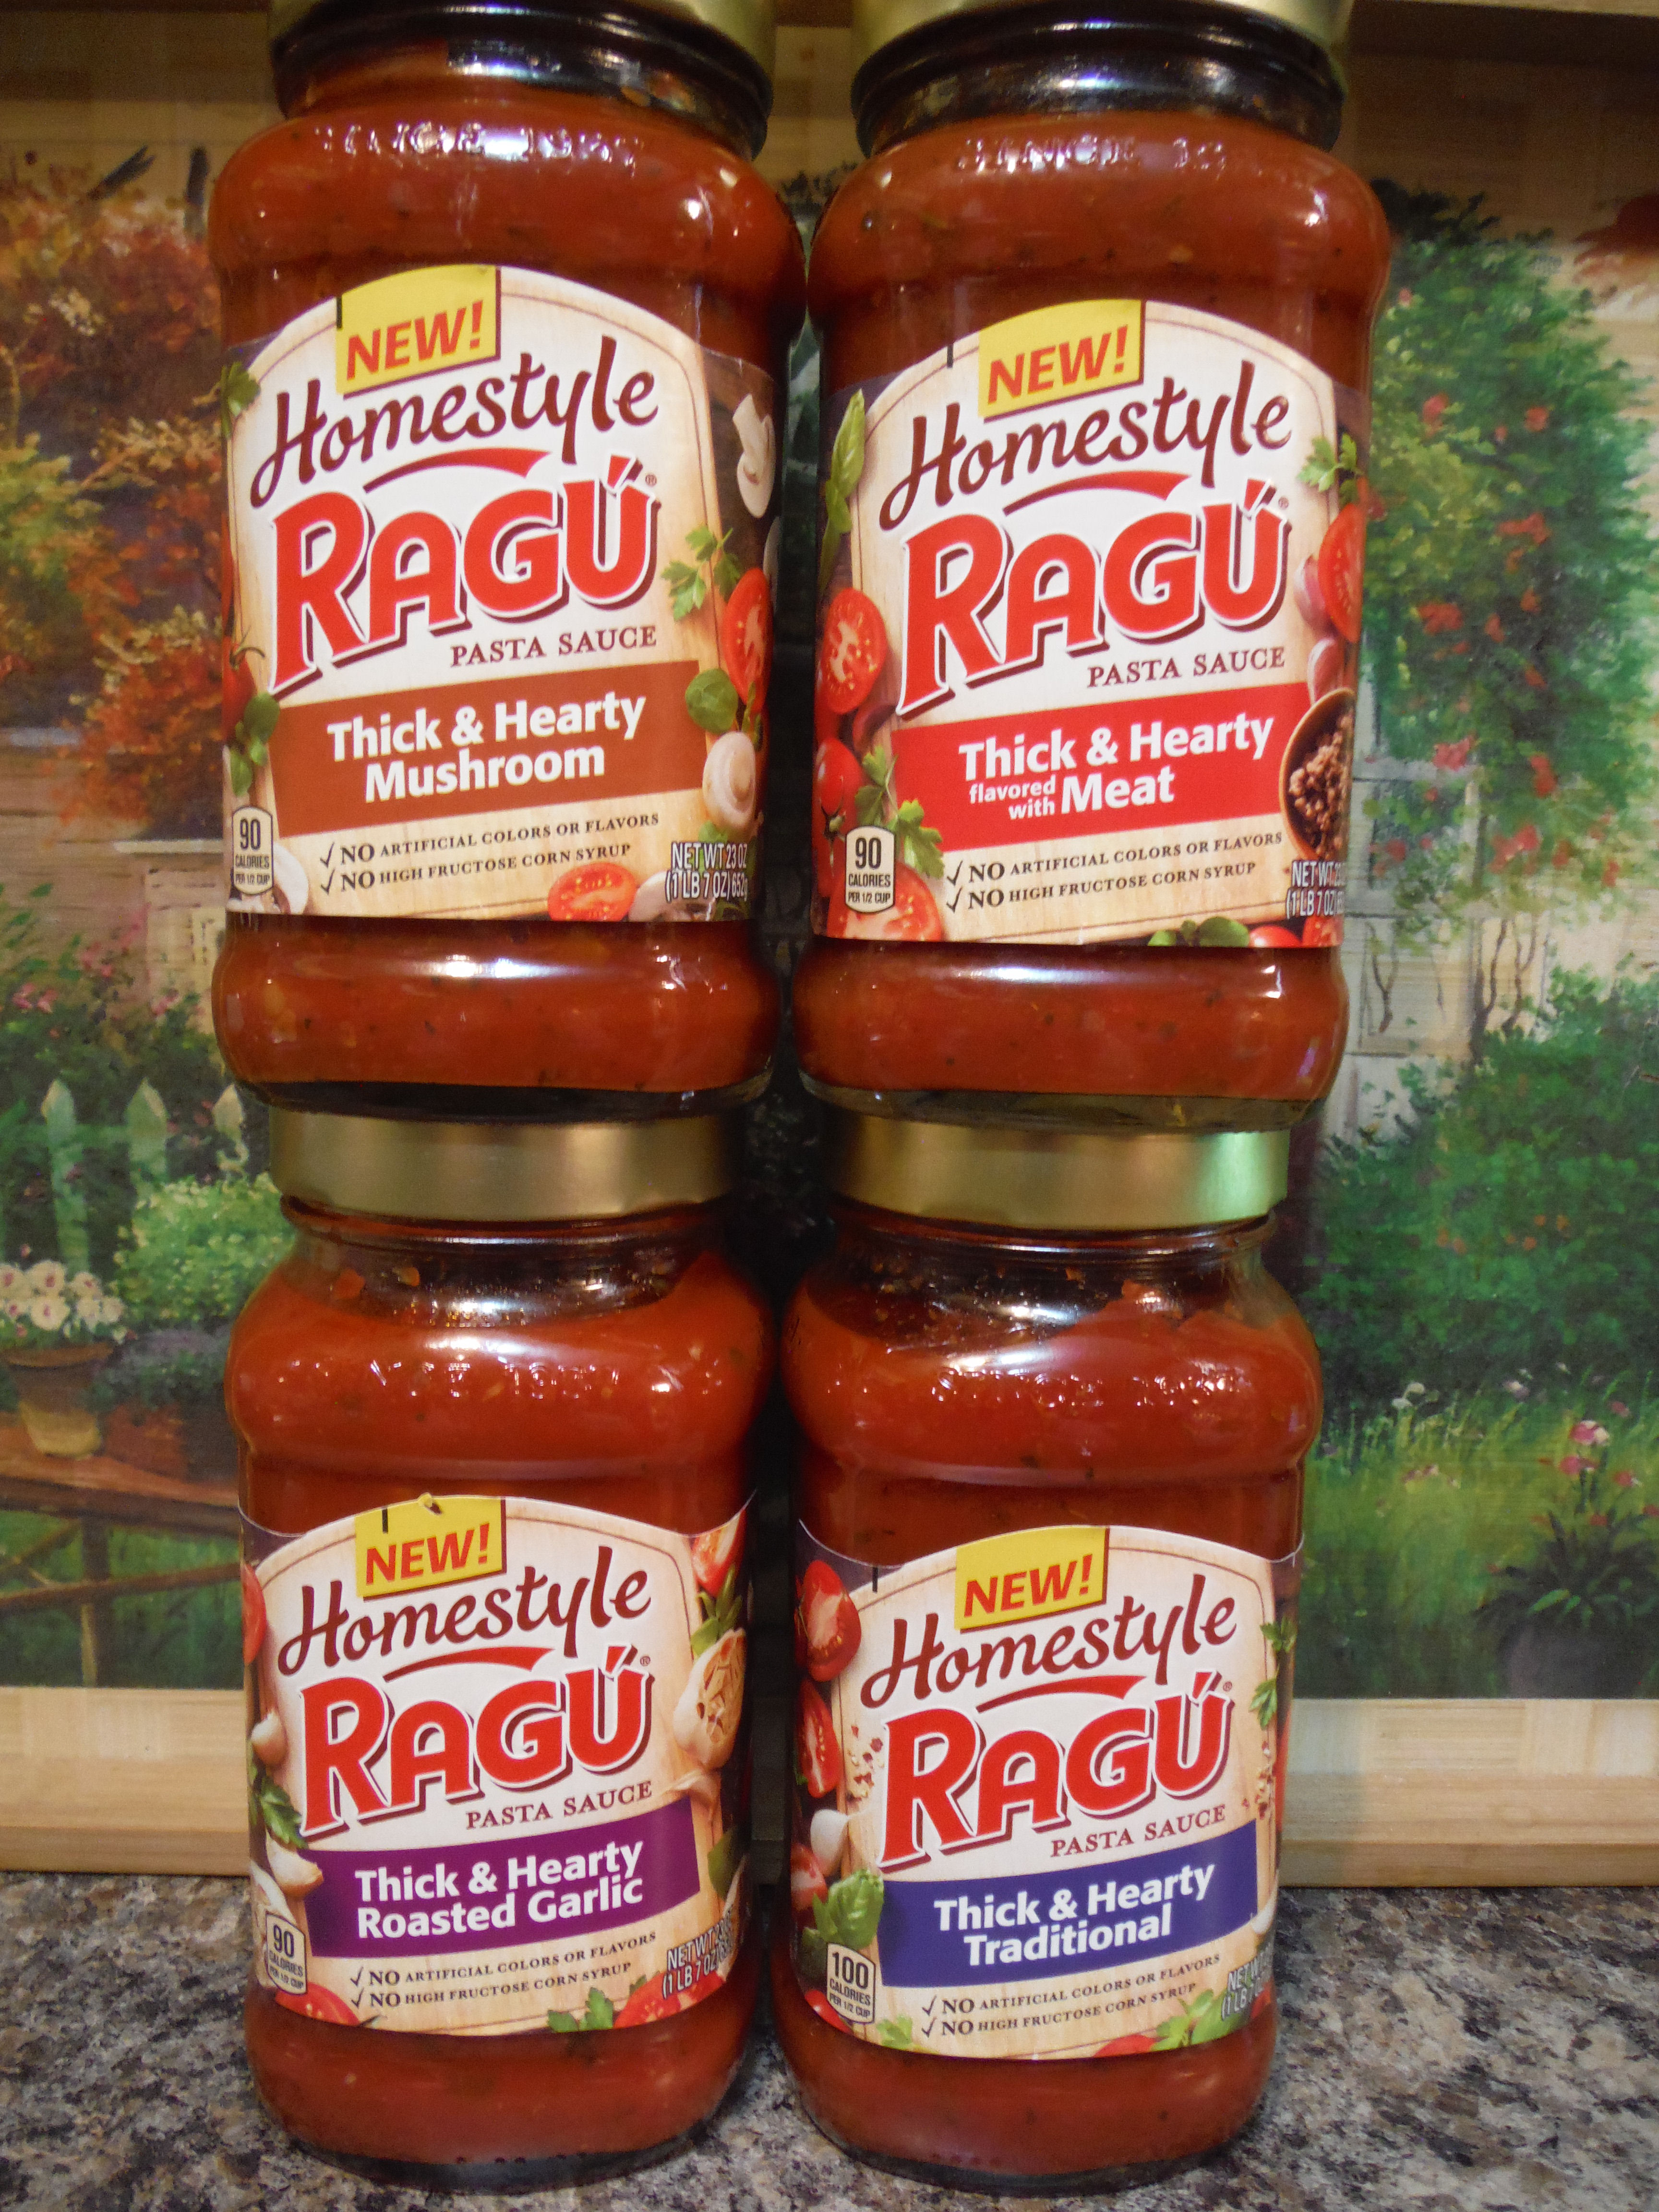 Delicious Ragu Homestyle Sauce! #Delicious #Thick #ad #Hearty